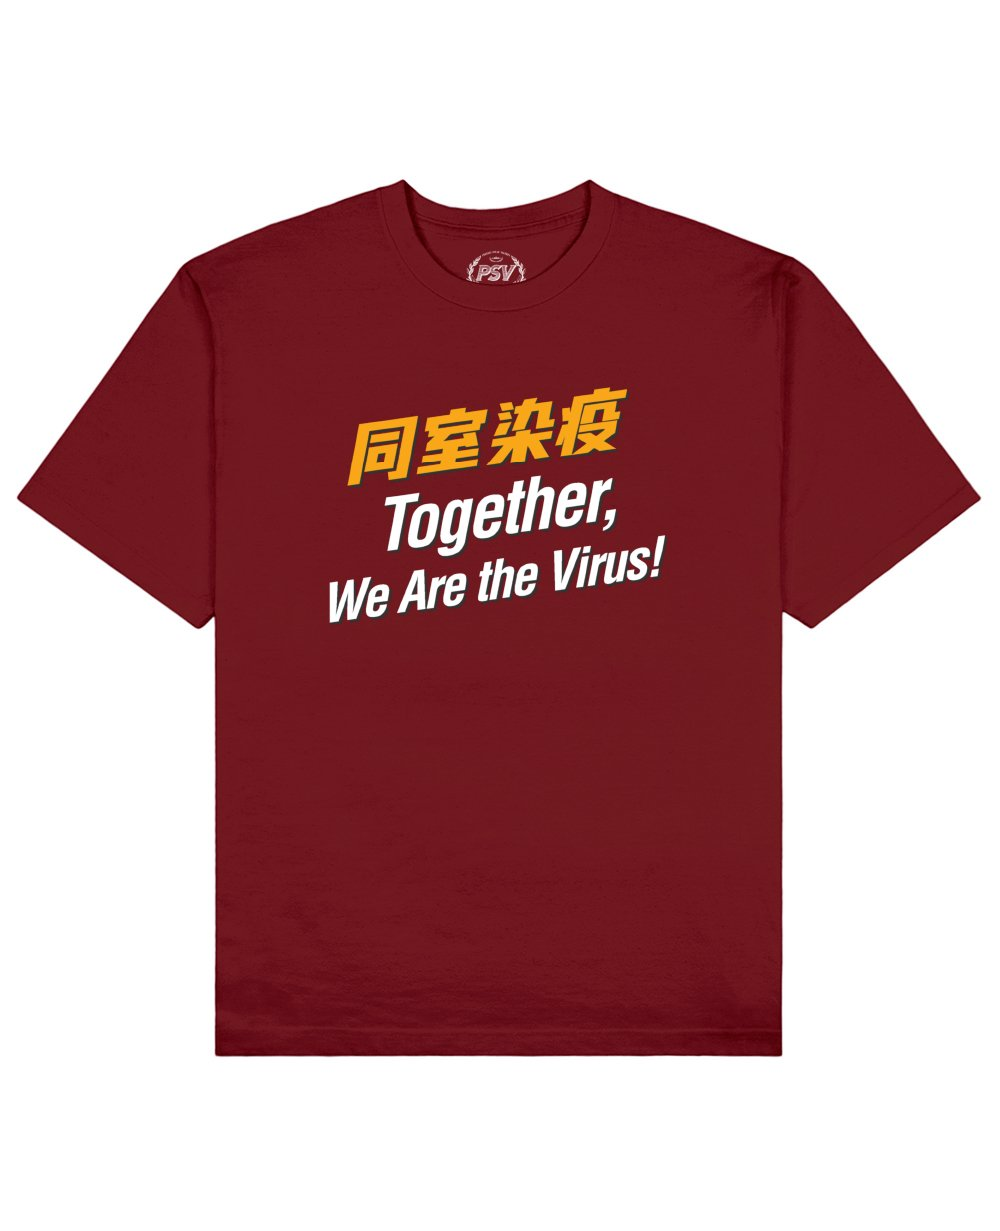 Together, We Are the Virus! Print T-Shirt in Red - T-Shirts - PSV - BRANMA